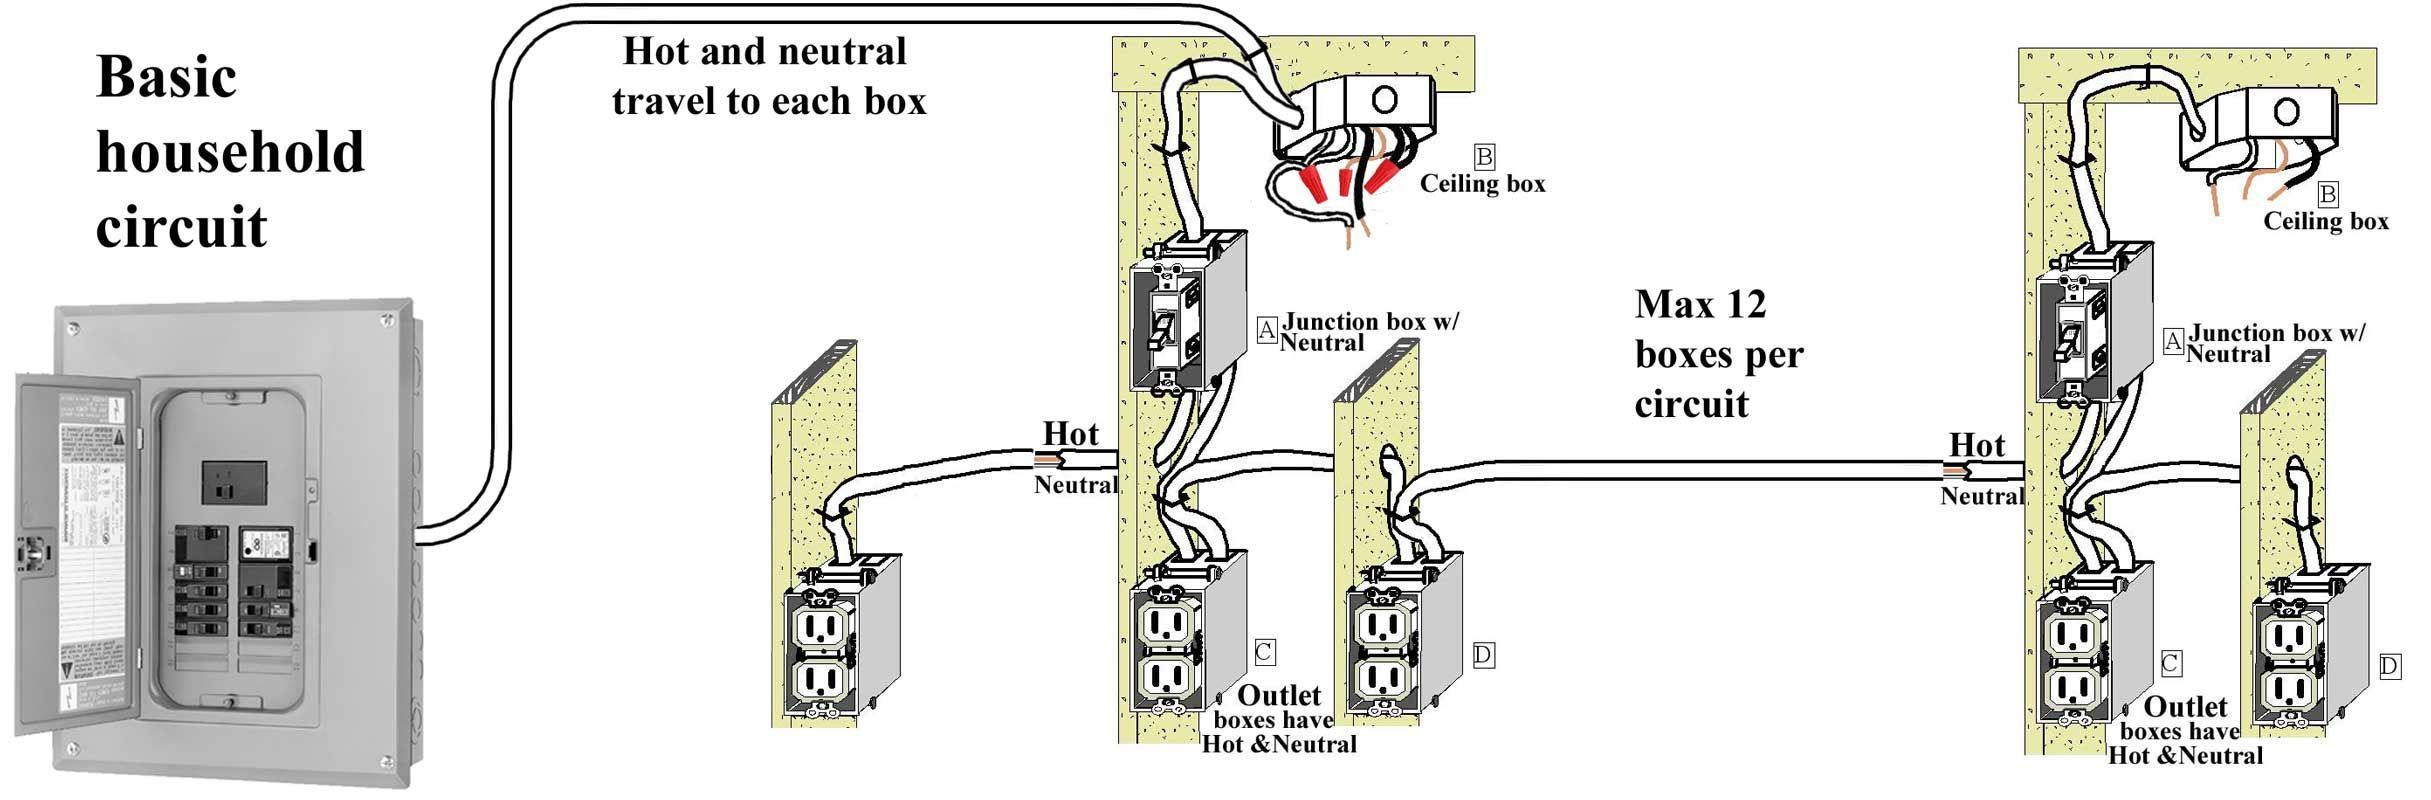 Wiring Diagram For House Outlets Electrical circuit